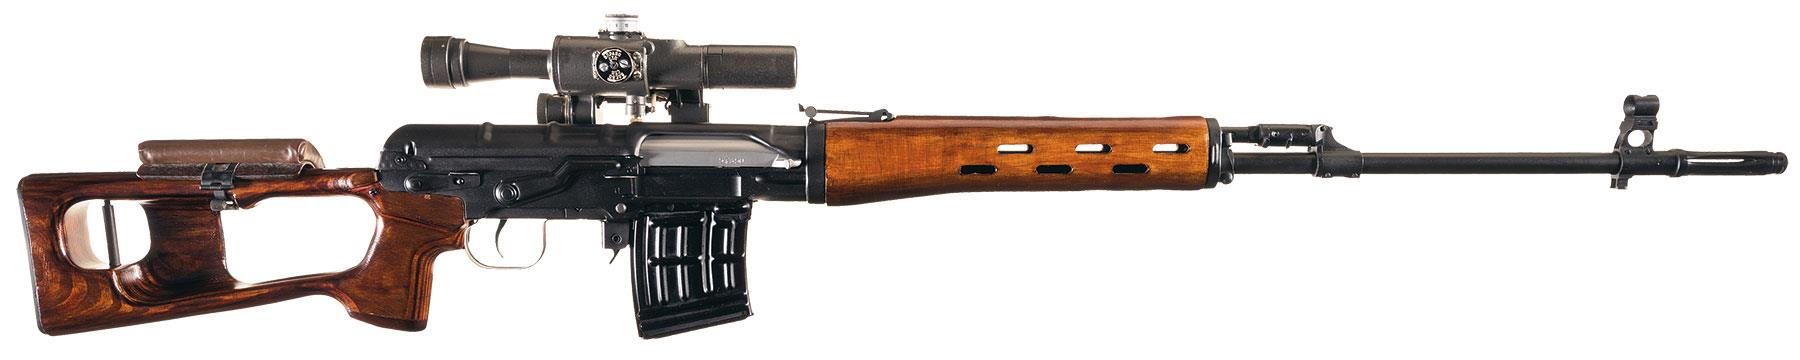 Ishevsk SVD Dragunov Infantry Sniper Rifle with Scope ...